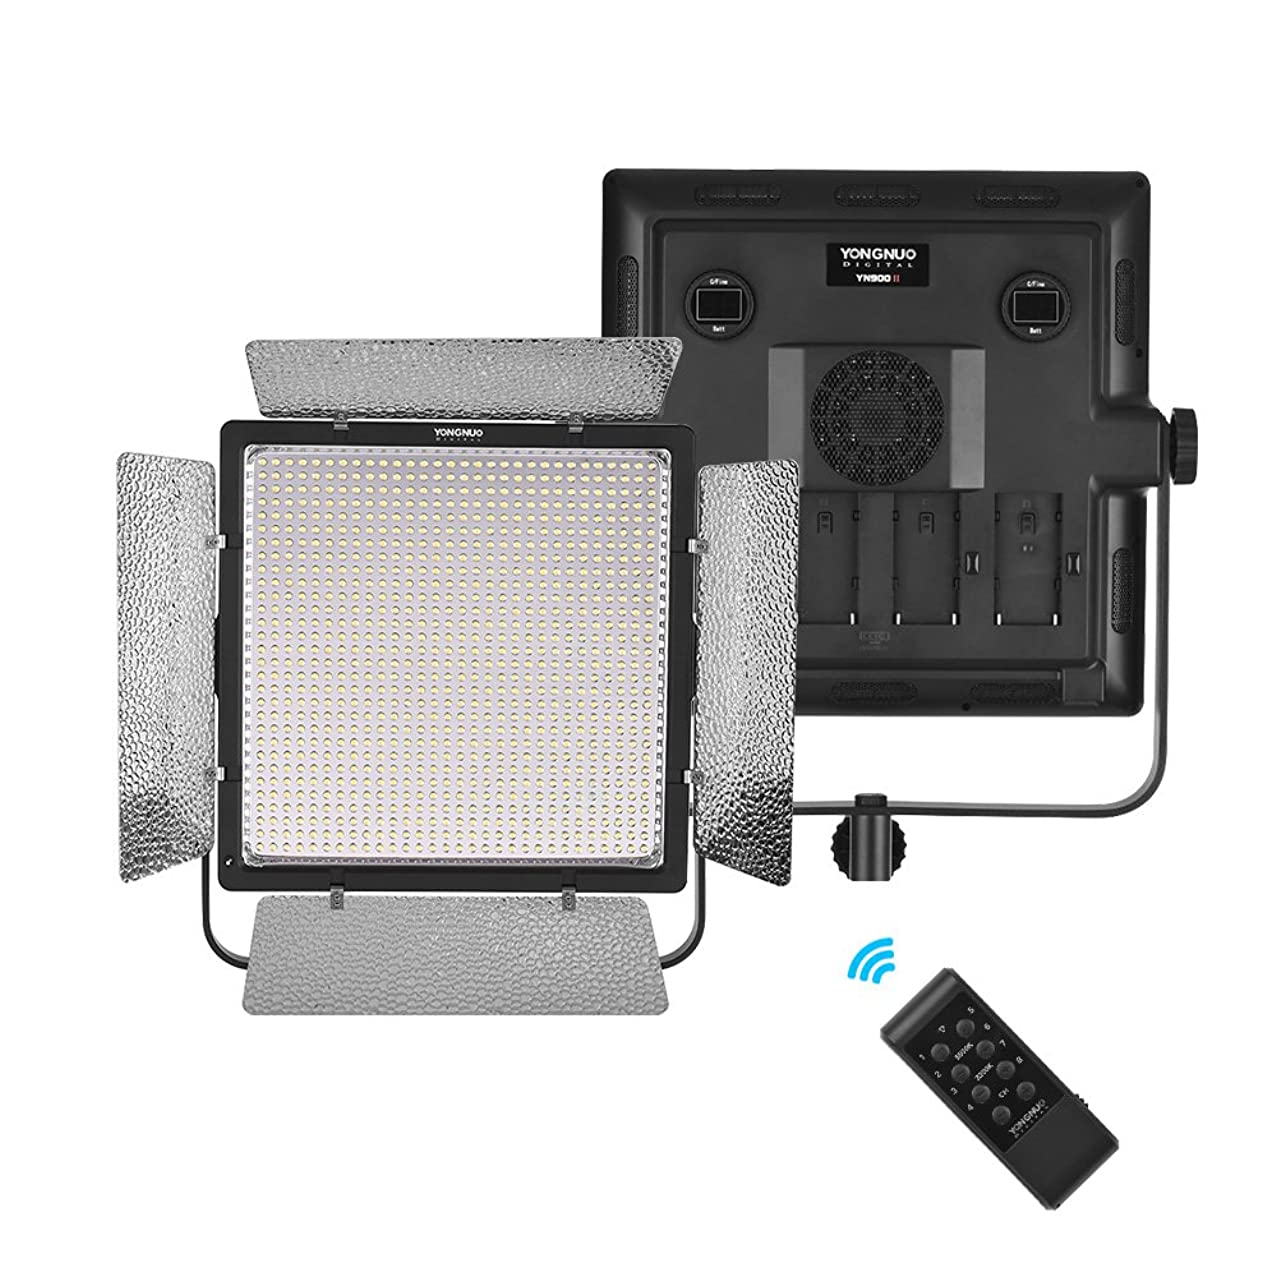 YONGNUO YN900II Professional 5500K Mono-Color LED Video Light Fill Light with Remote Control Adjustable Power 54W CRI 95+ for Micro Film MV Recording Wedding Interview and Product Photography